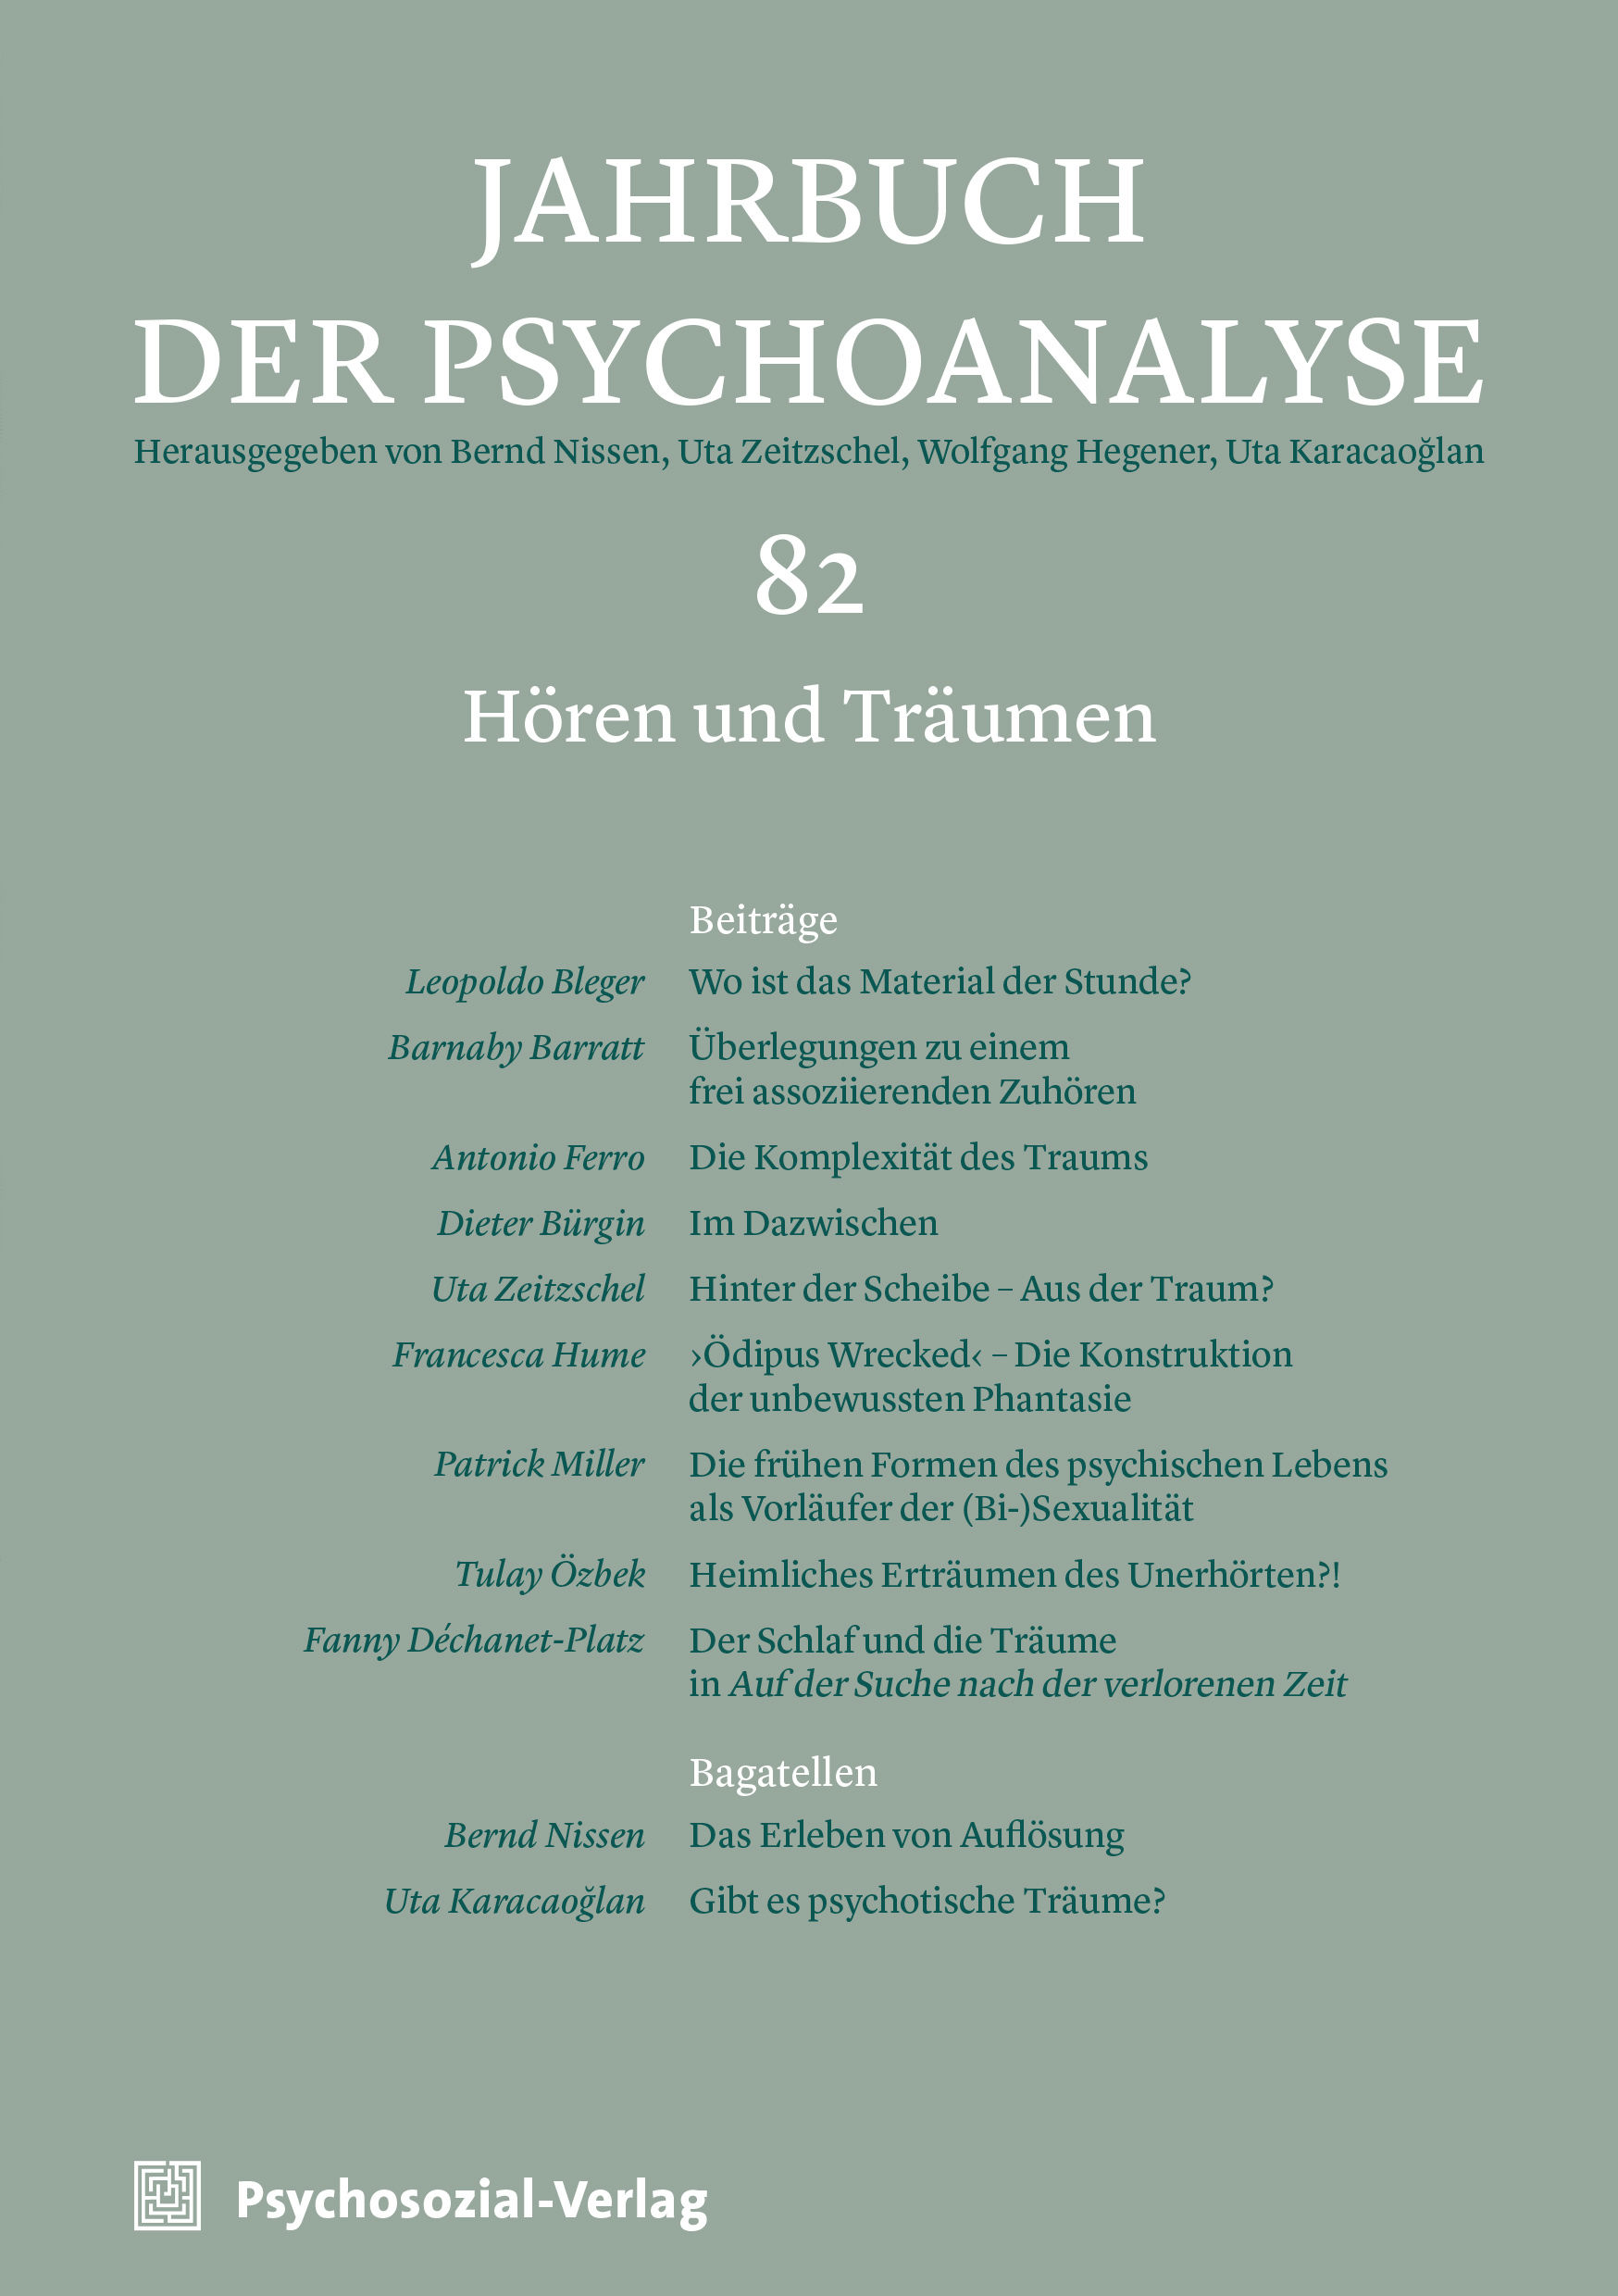 https://www.psychosozial-verlag.de/catalog/images/products/onix/8320.jpg